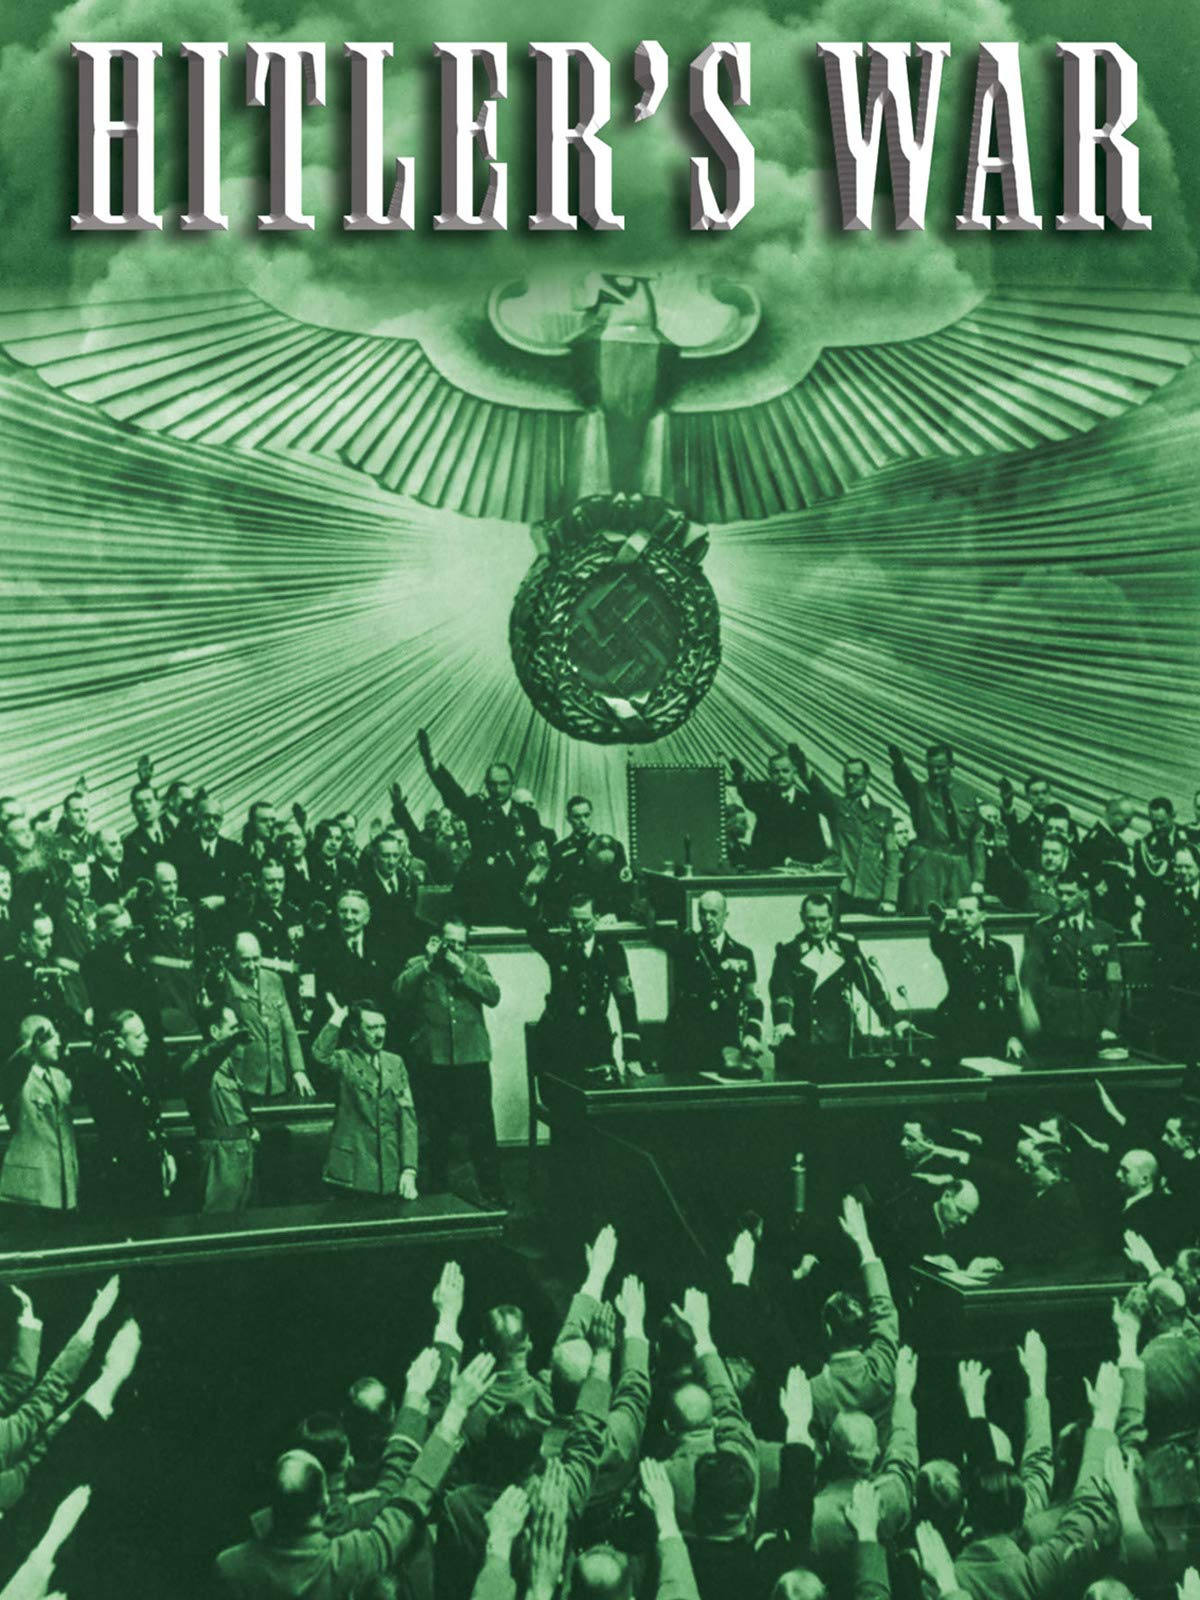 Hitler's War on Amazon Prime Video UK